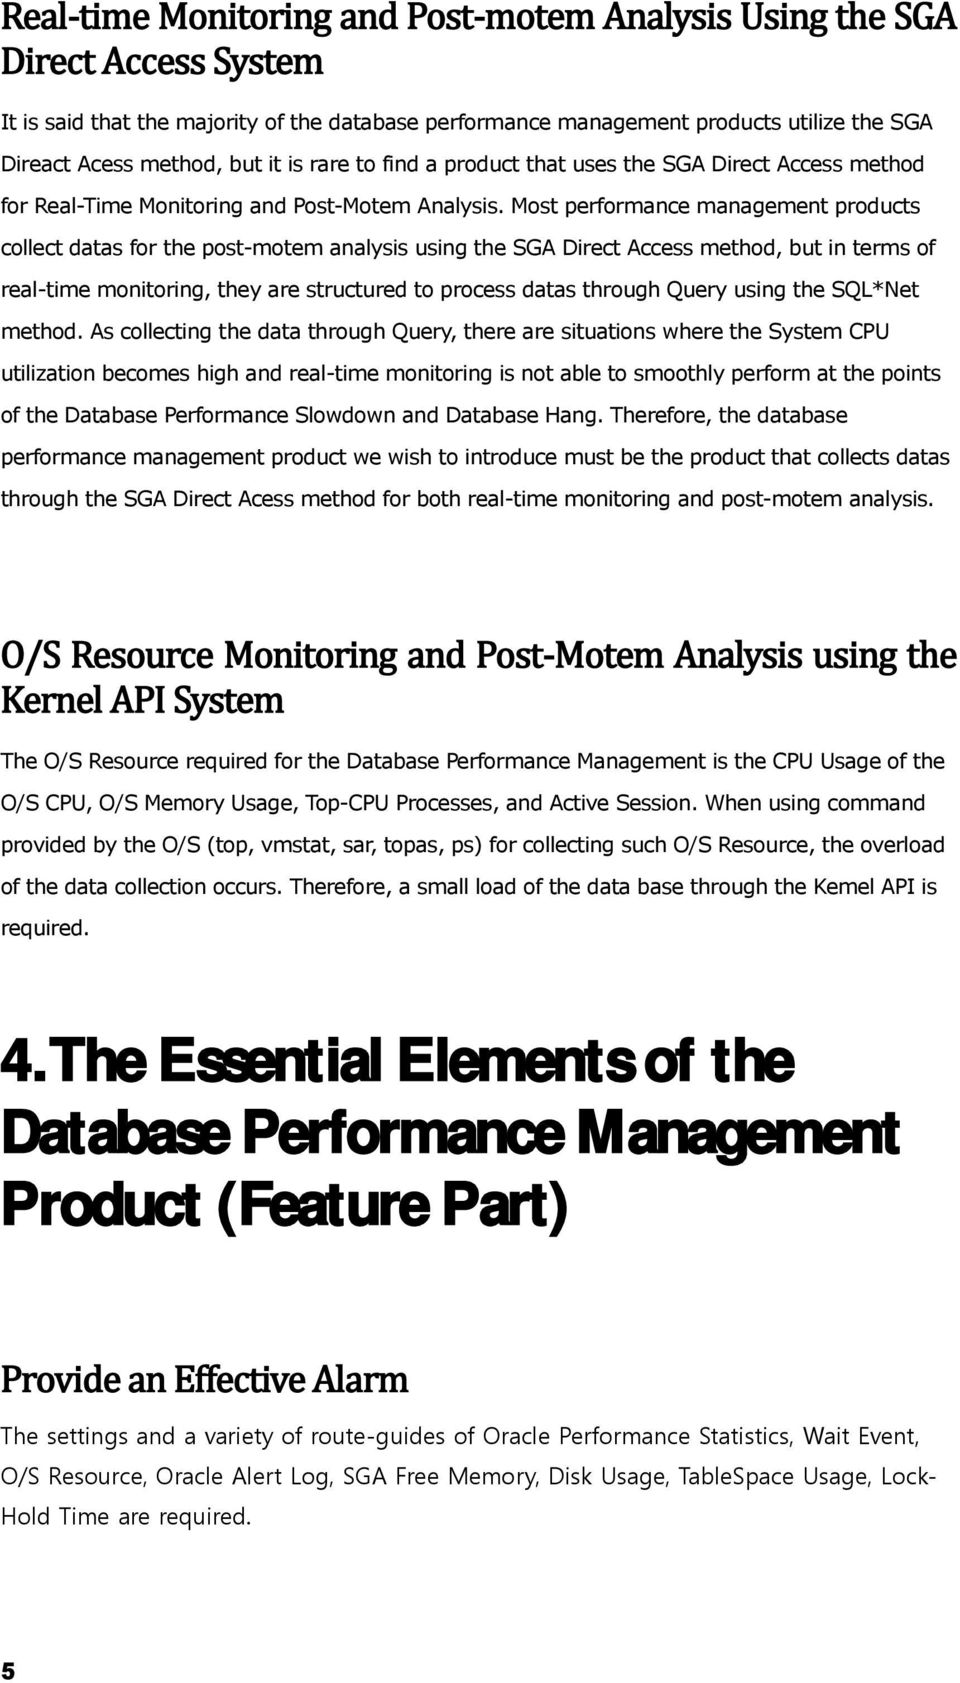 Most performance management products collect datas for the post-motem analysis using the SGA Direct Access method, but in terms of real-time monitoring, they are structured to process datas through